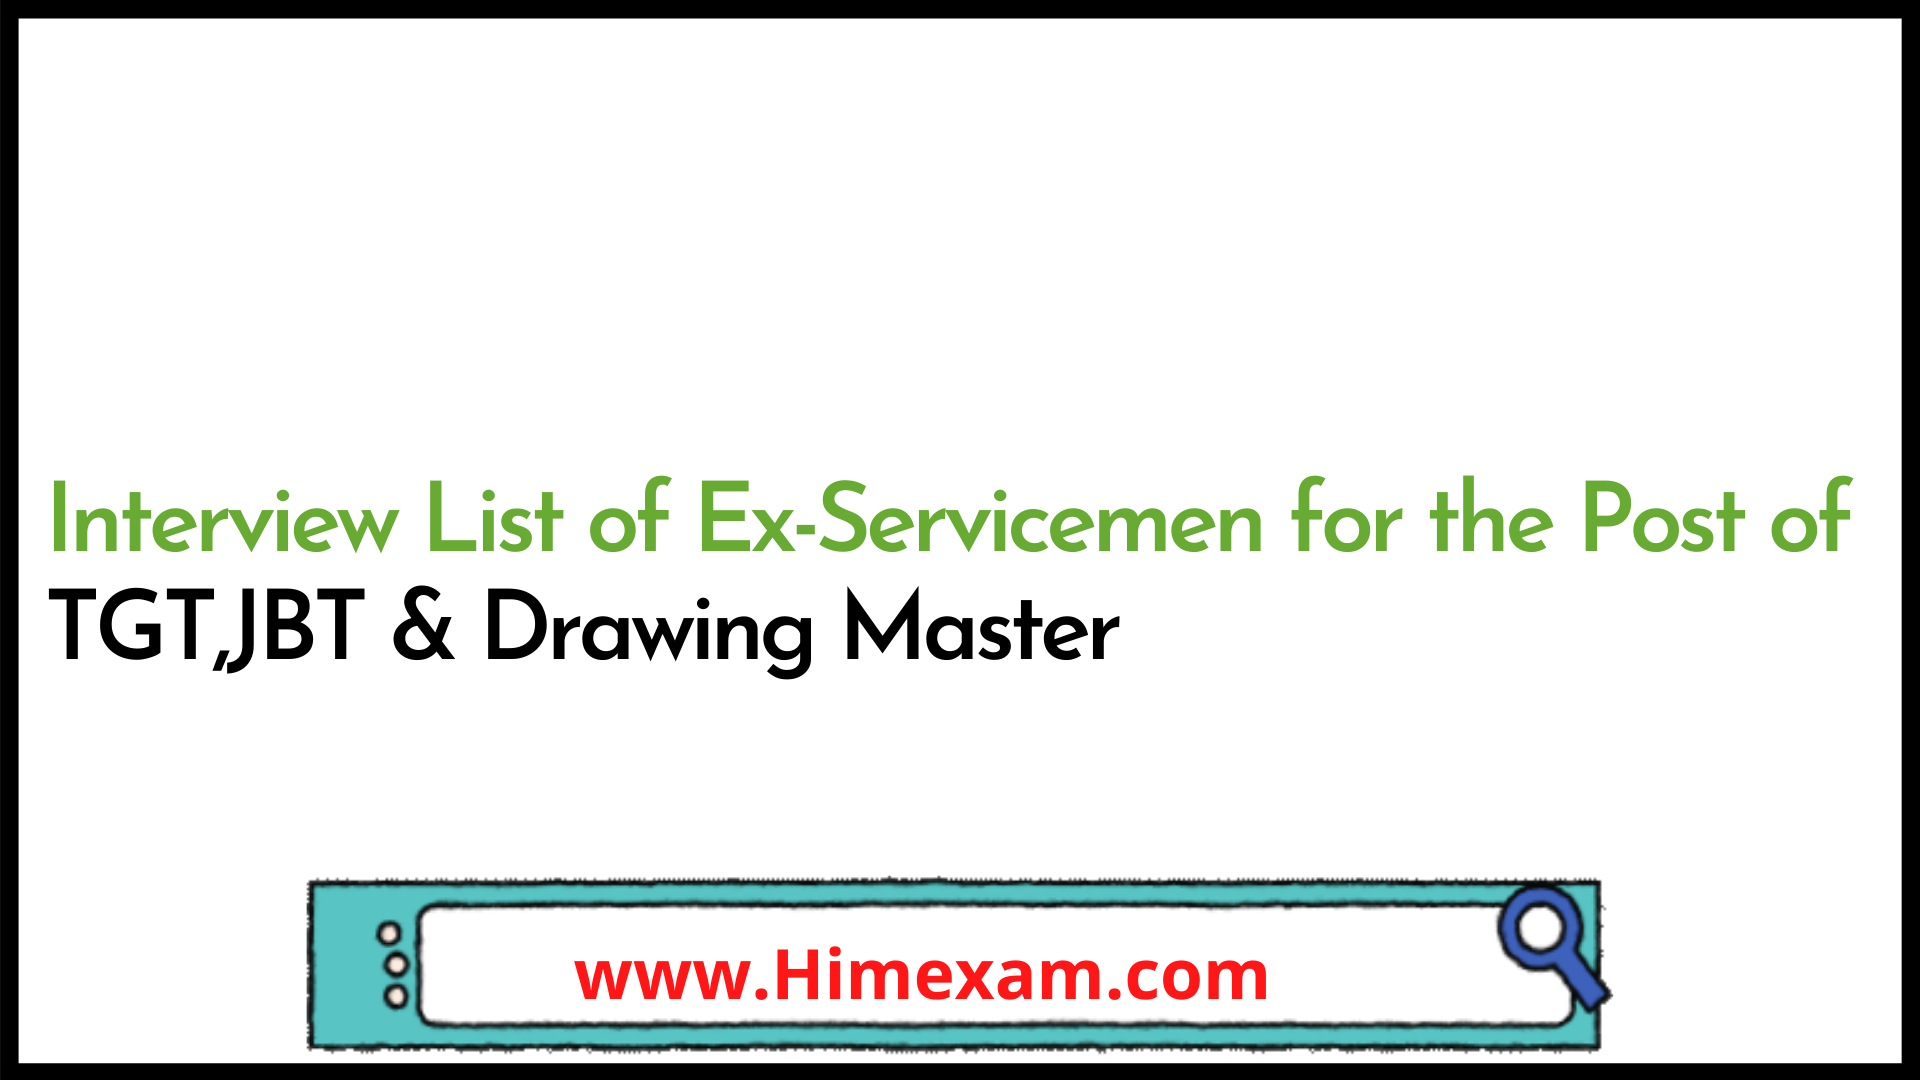 Interview List of Ex-Servicemen for the Post of  TGT,JBT & Drawing Master